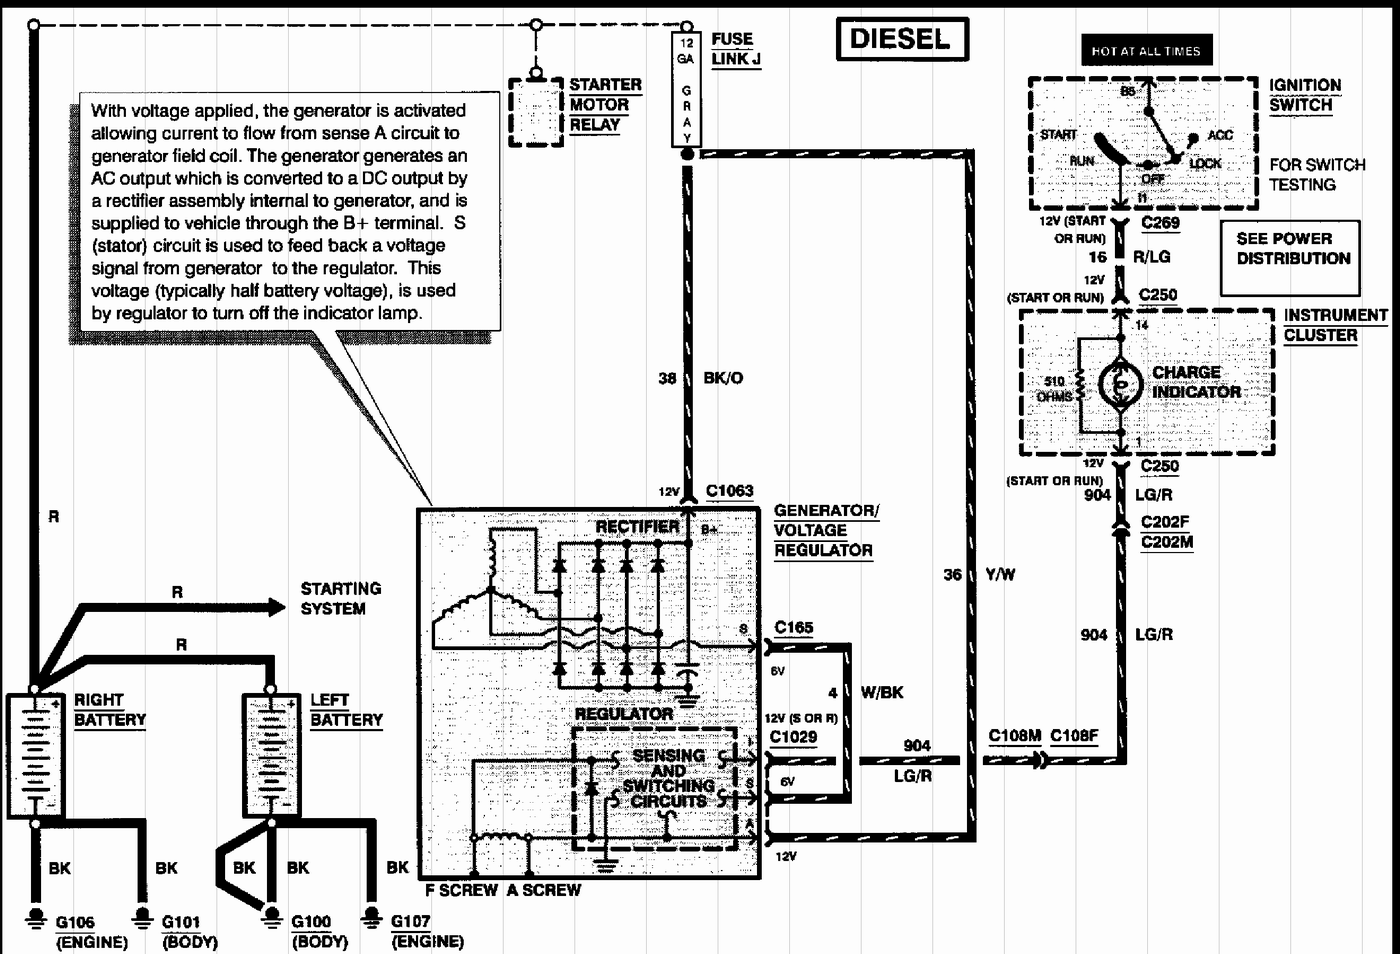 hight resolution of 73 powerstroke wiring harness wiring diagram options f250 7 3l wiring diagram 1997